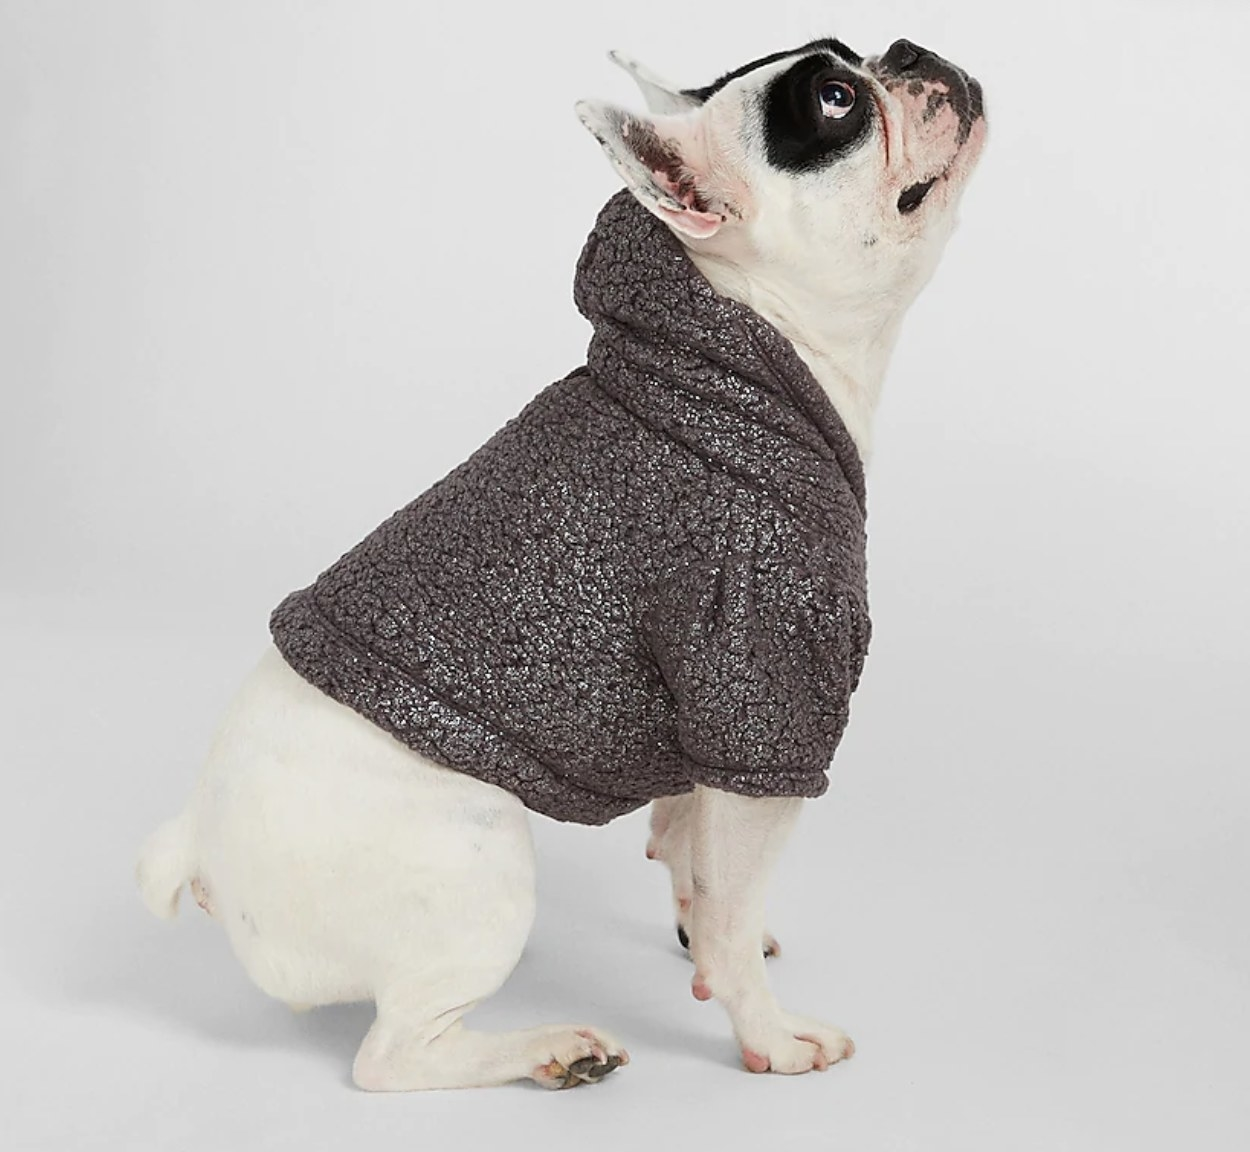 A dark brown pullover that a bulldog is wearing